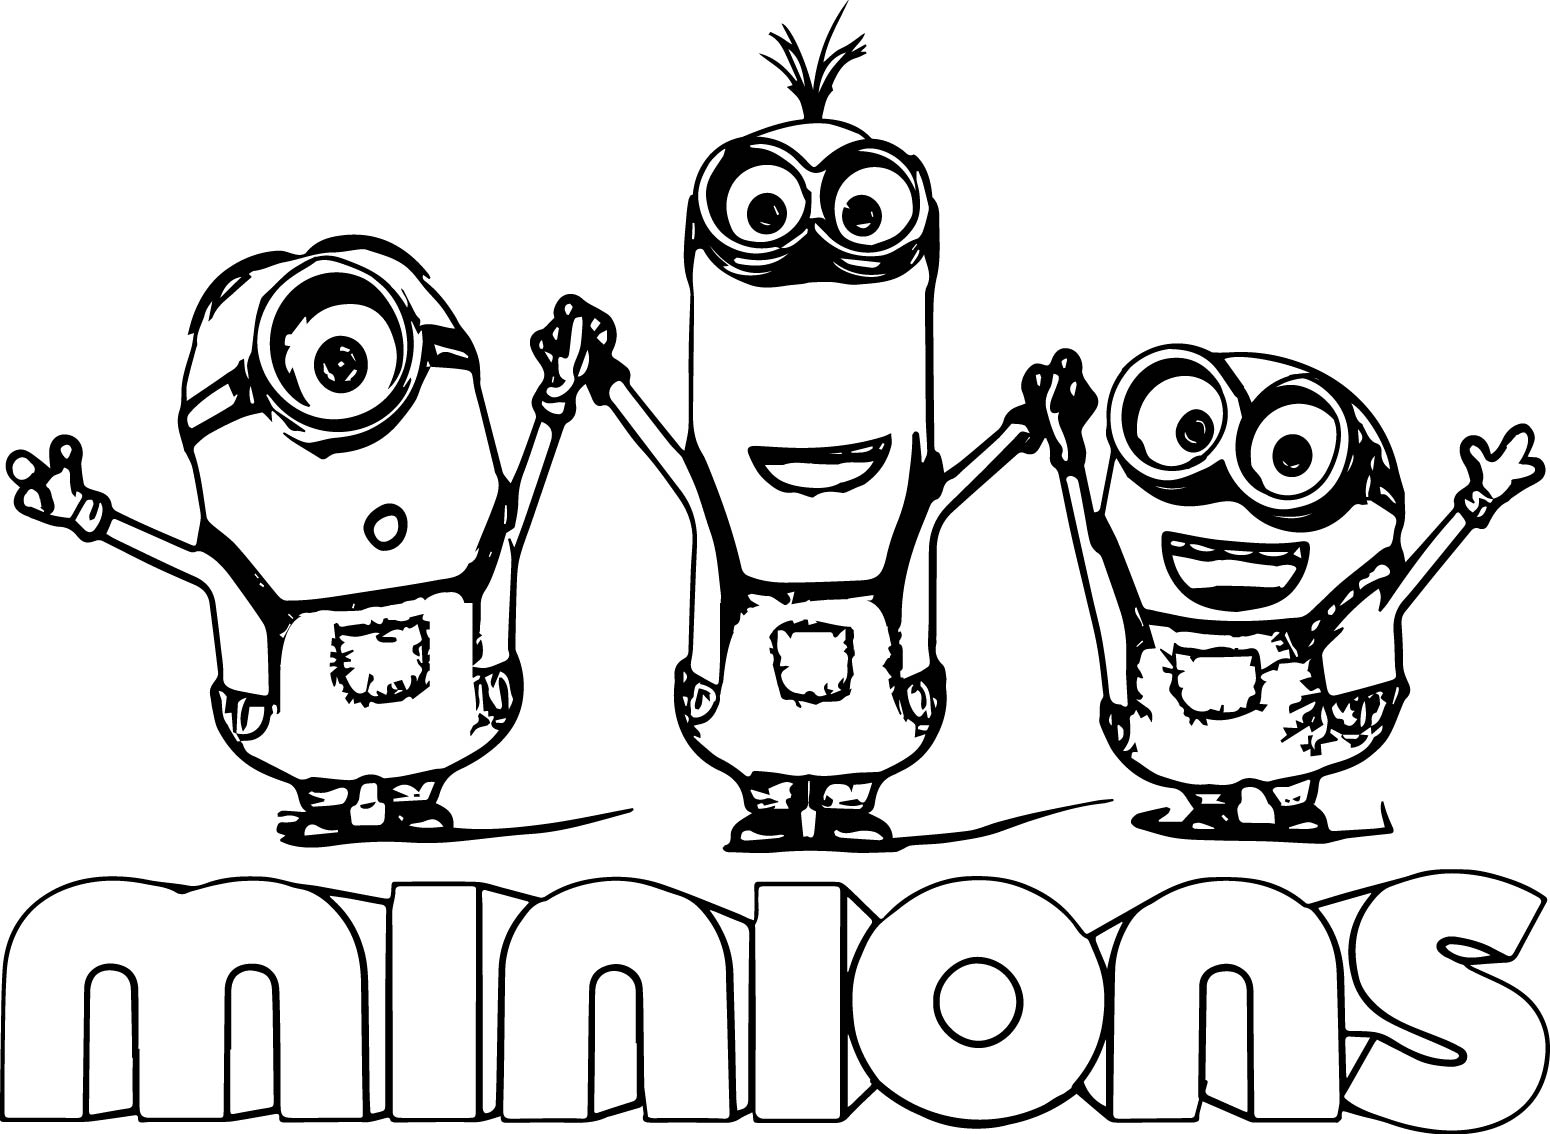 minions coloring pages banana split - photo#27